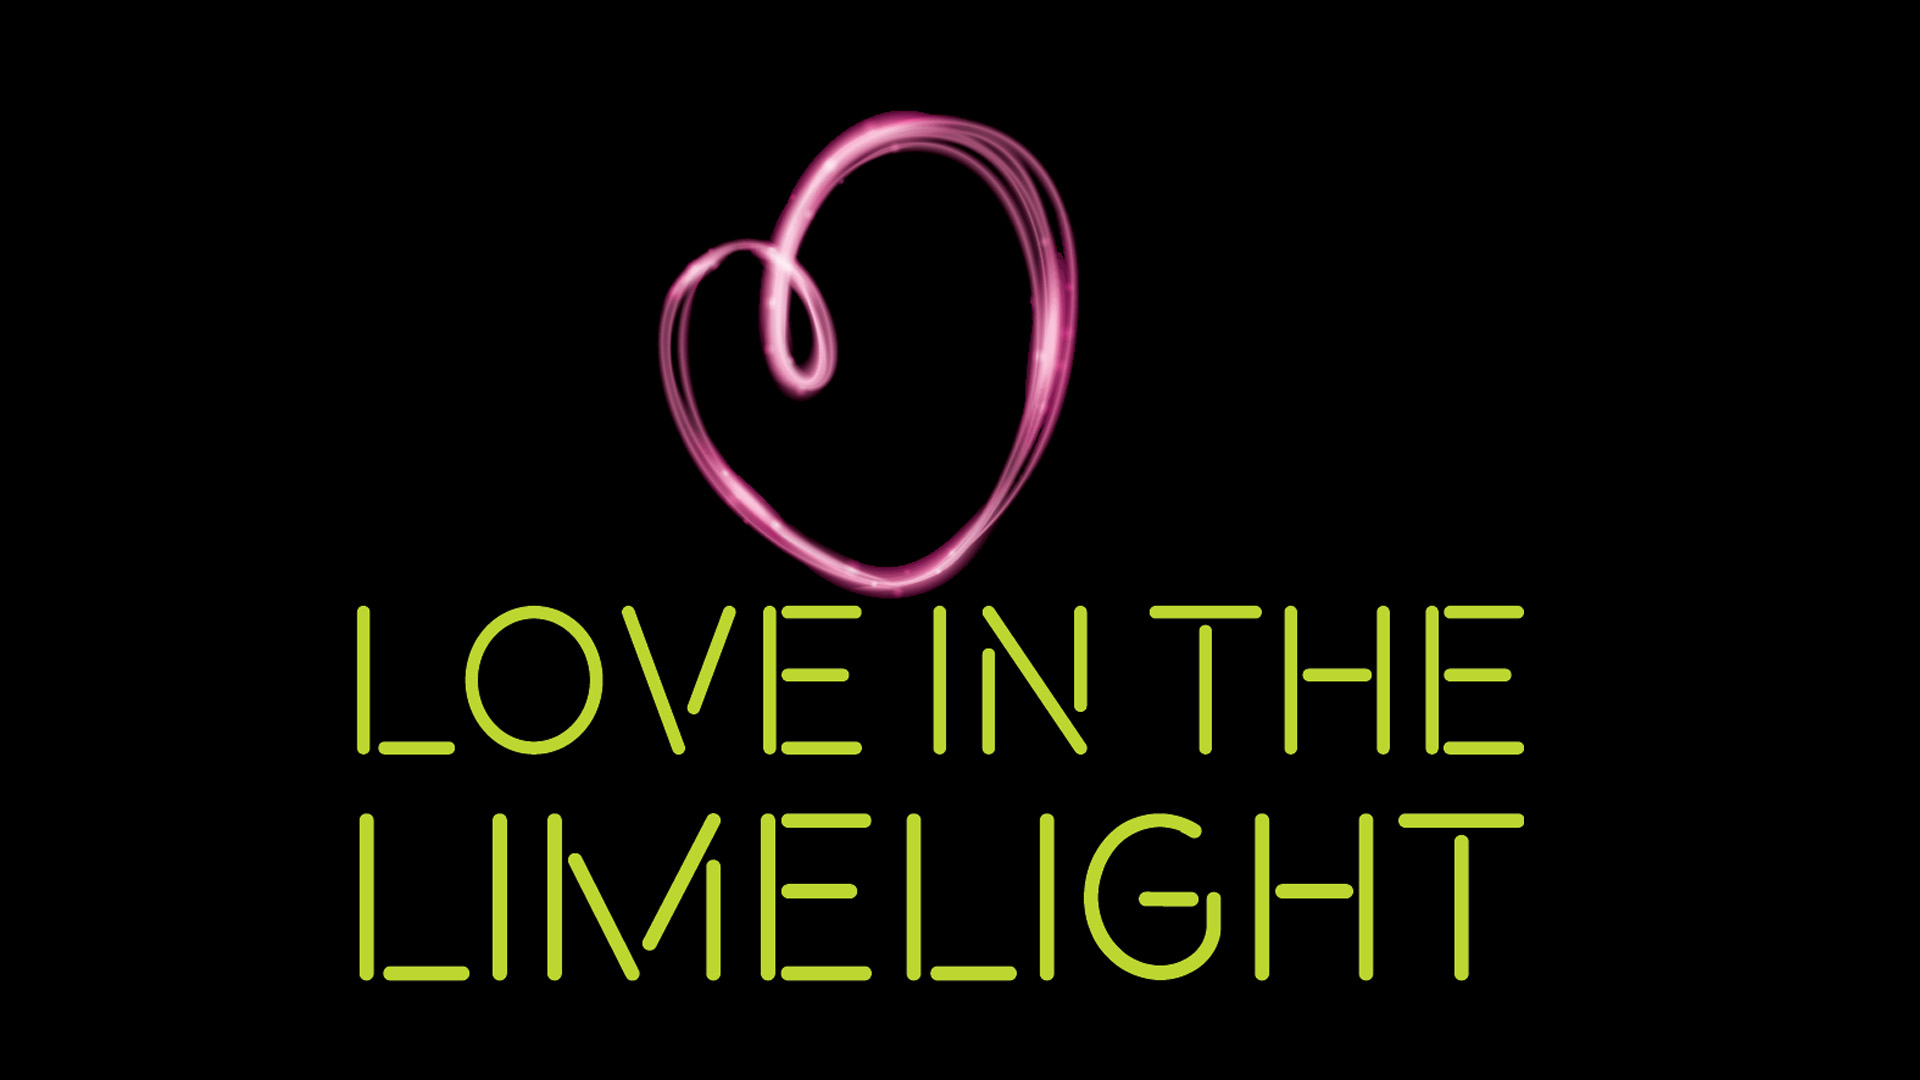 Congratulations to 'Love in the Limelight'